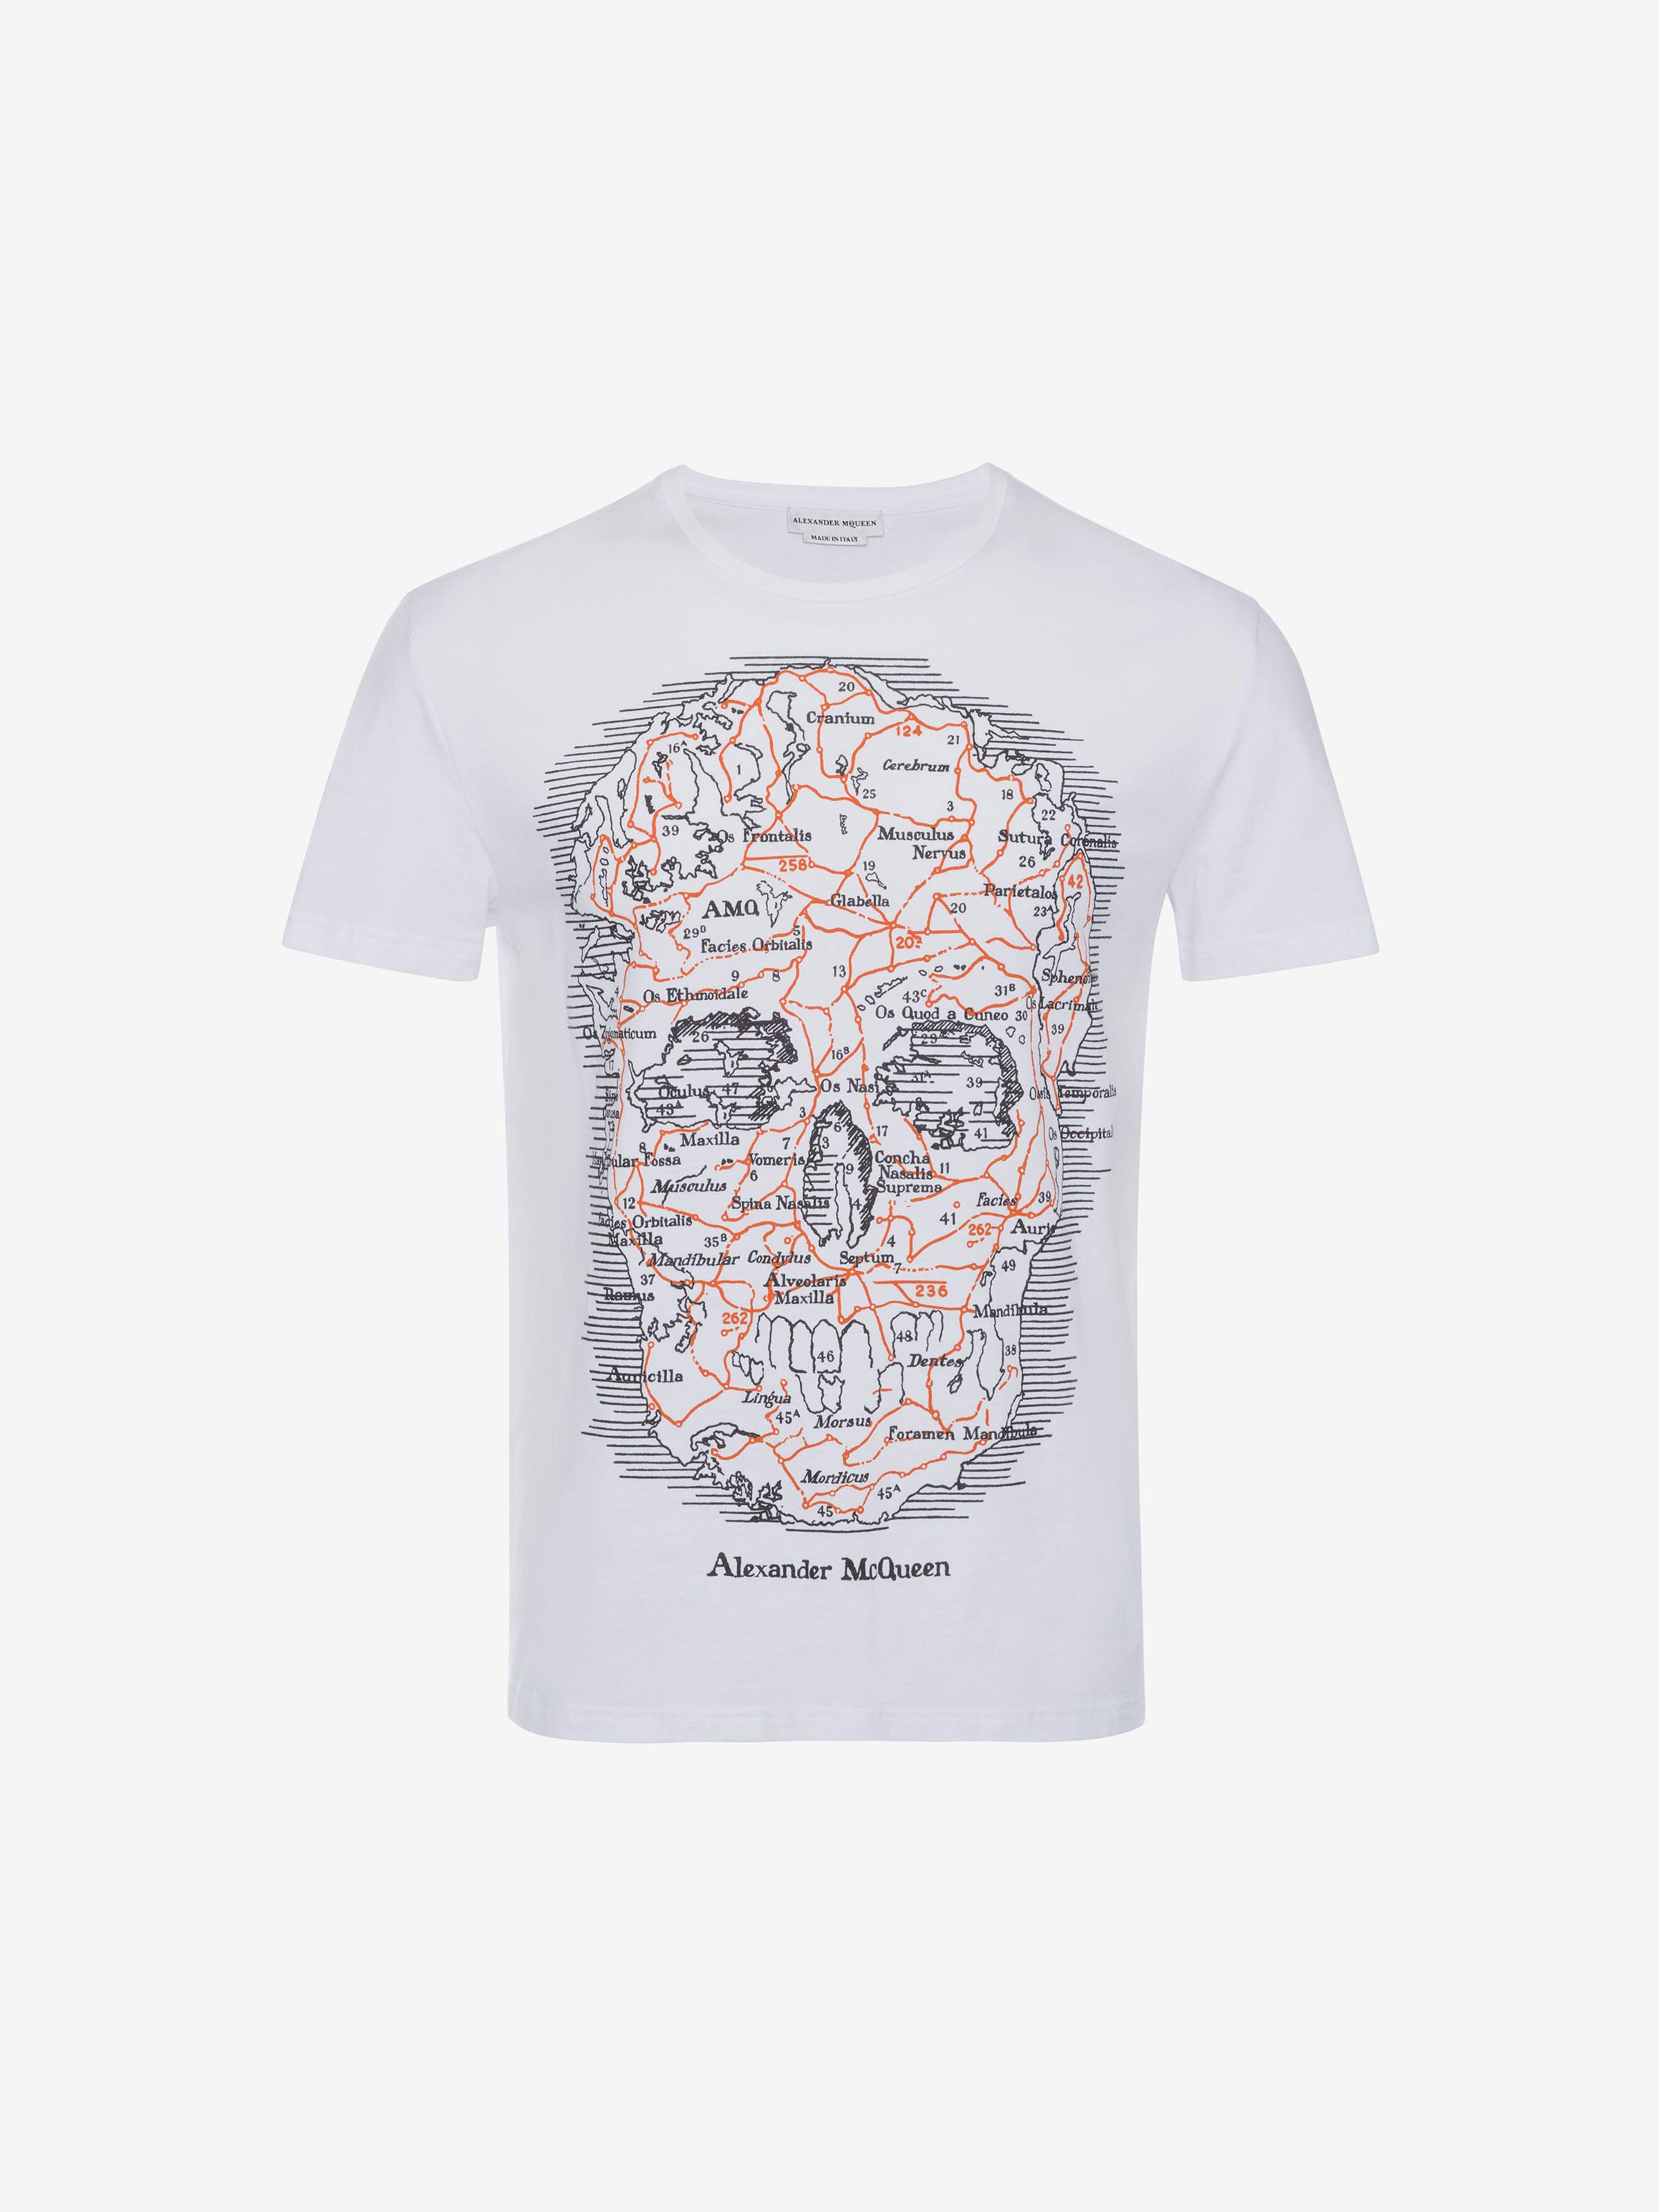 bc31ab8cd Alexander Mcqueen Map Skull T-Shirt - Black/Multicolor Xs | Products ...